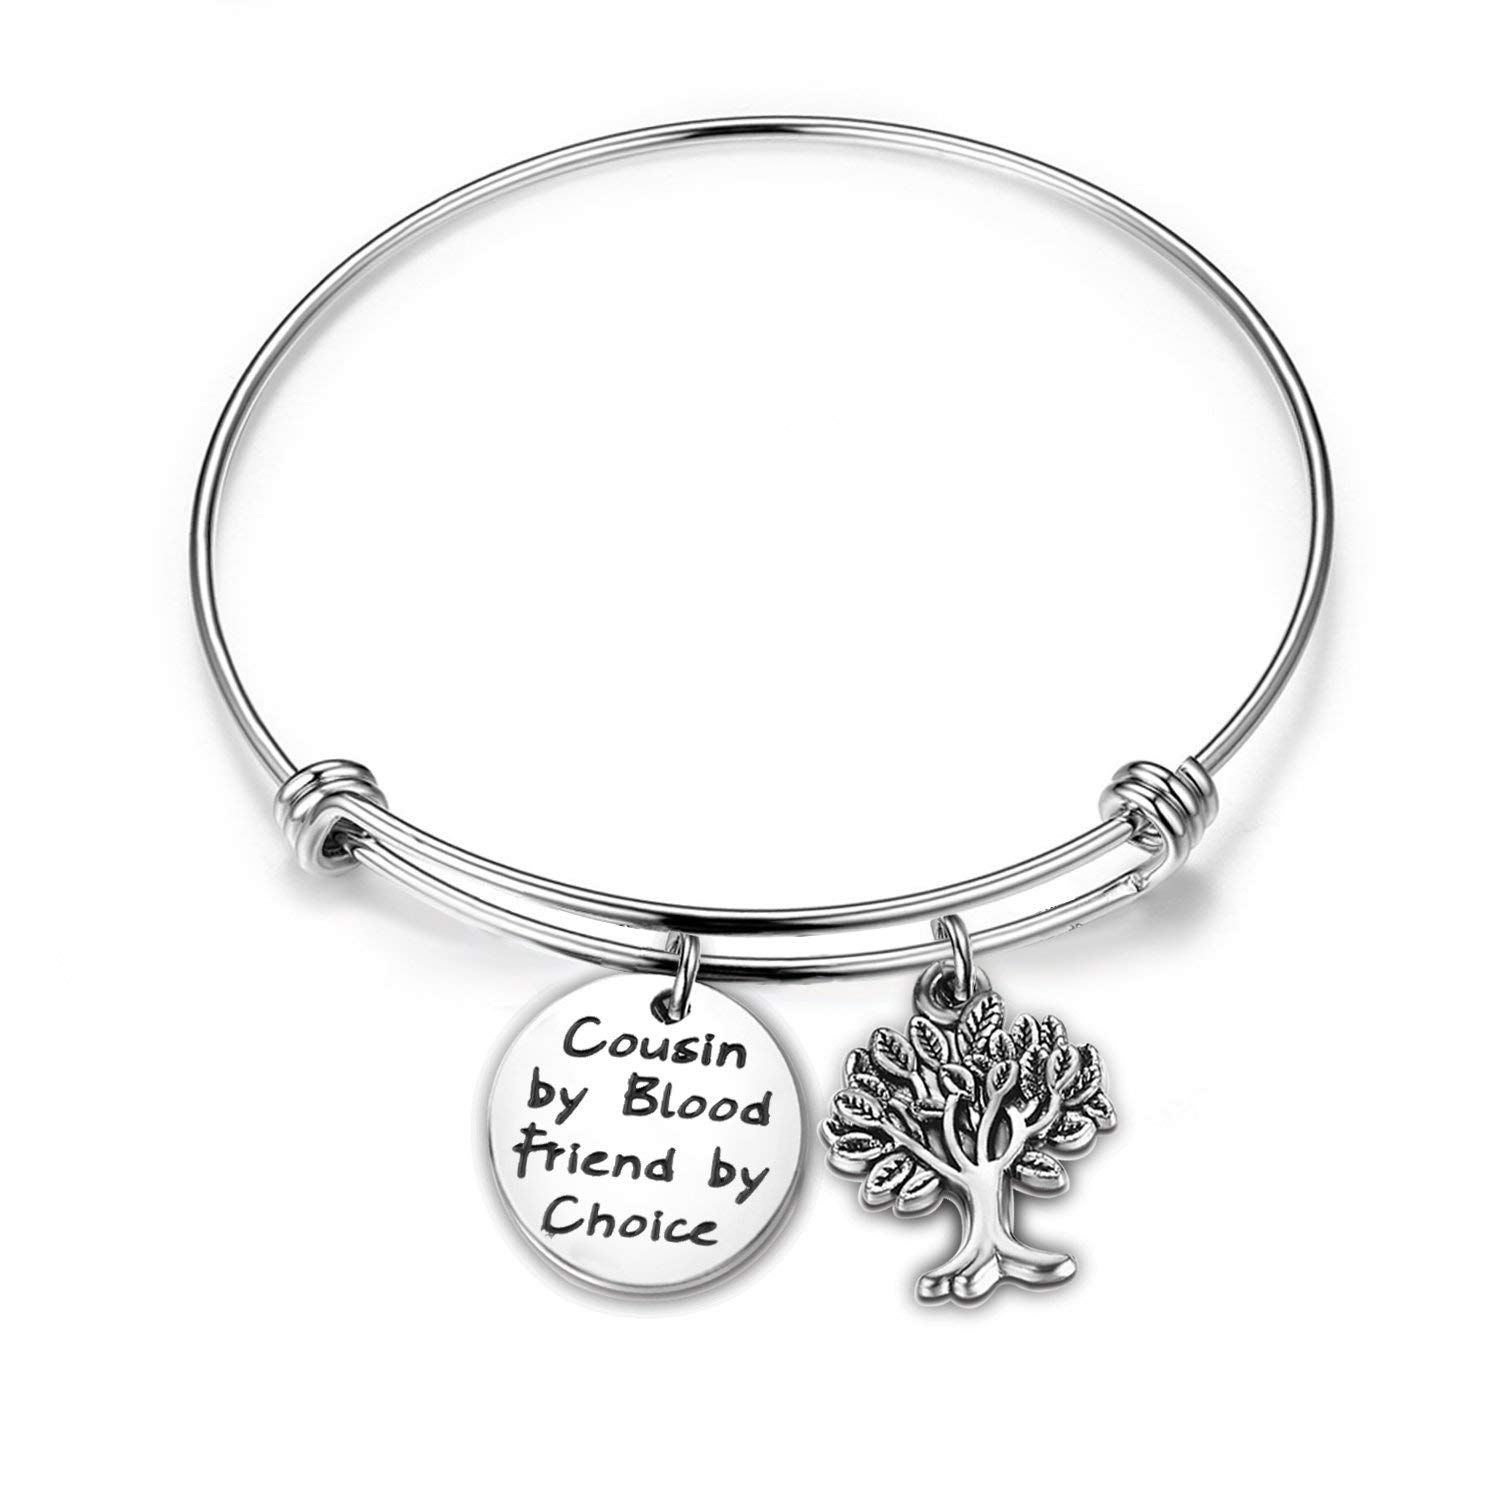 Maofaed Cousin Gift Bracelet By Blood Friends Choice Family Tree For Cousins You Can Get Additional Details At The Image